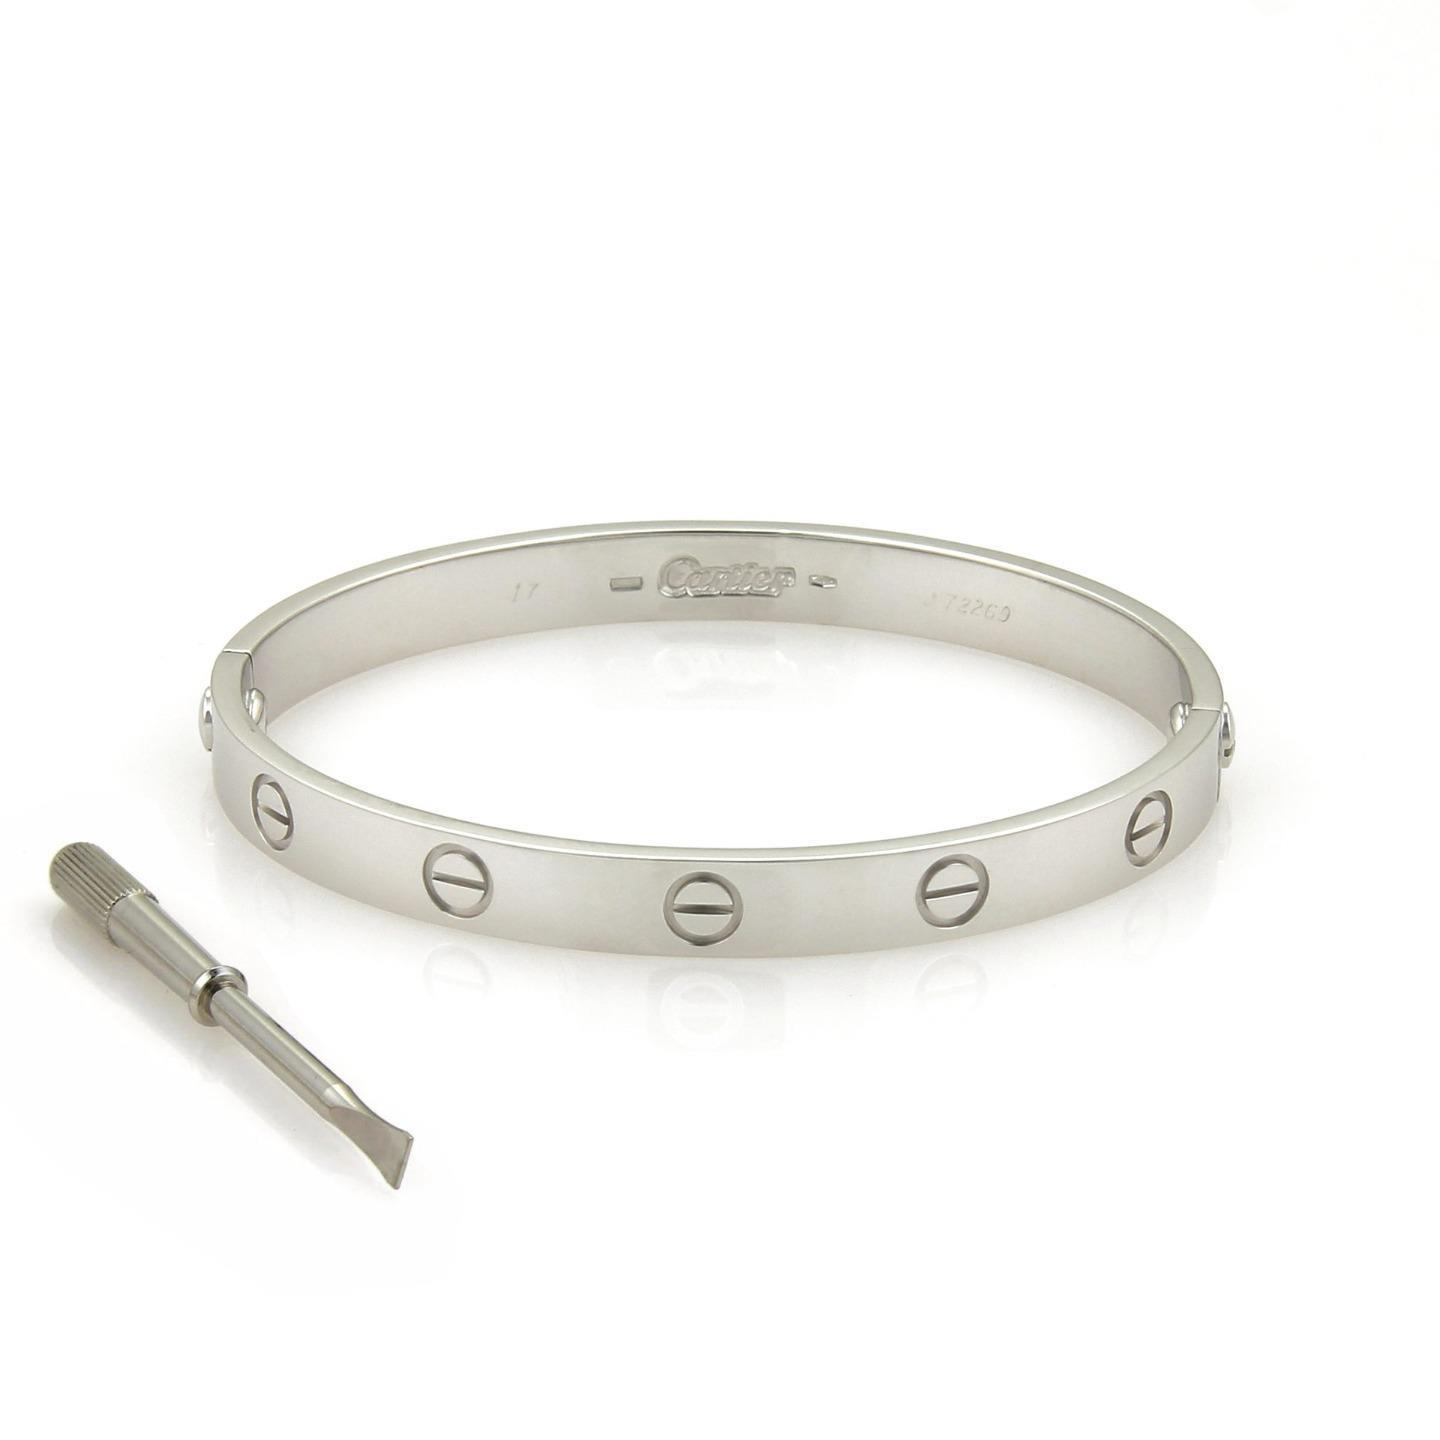 Cartier 21062  Love 18k White Gold Bangle W Paper Size 17 Bracelet     Cartier Love 18k White Gold Bangle w Paper Size 17